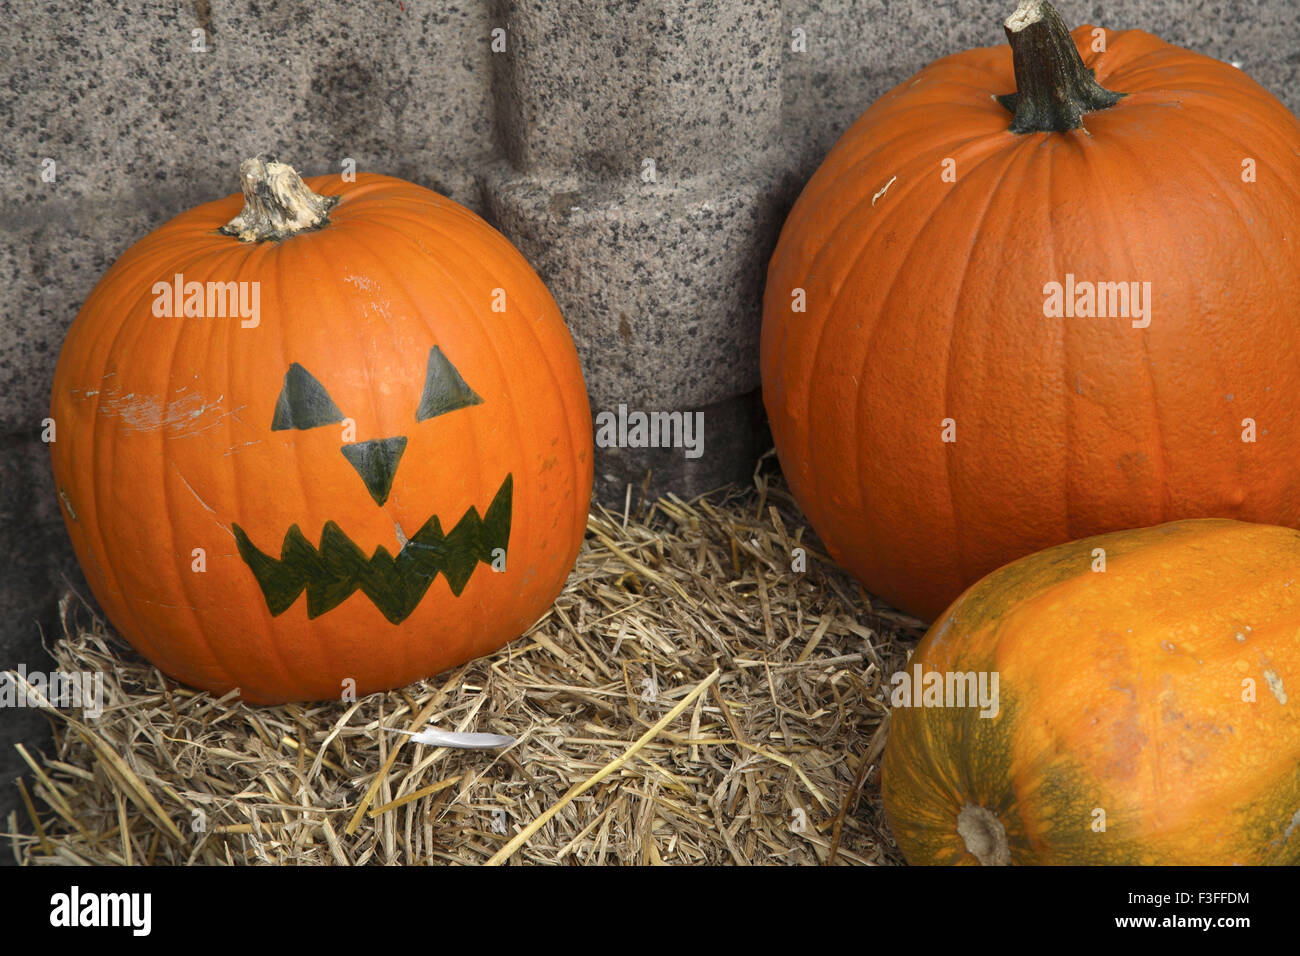 Vegetable ; myth pumpkin All Saints Eve ; Copenhagen ; Denmark ; Scandinavian - Stock Image